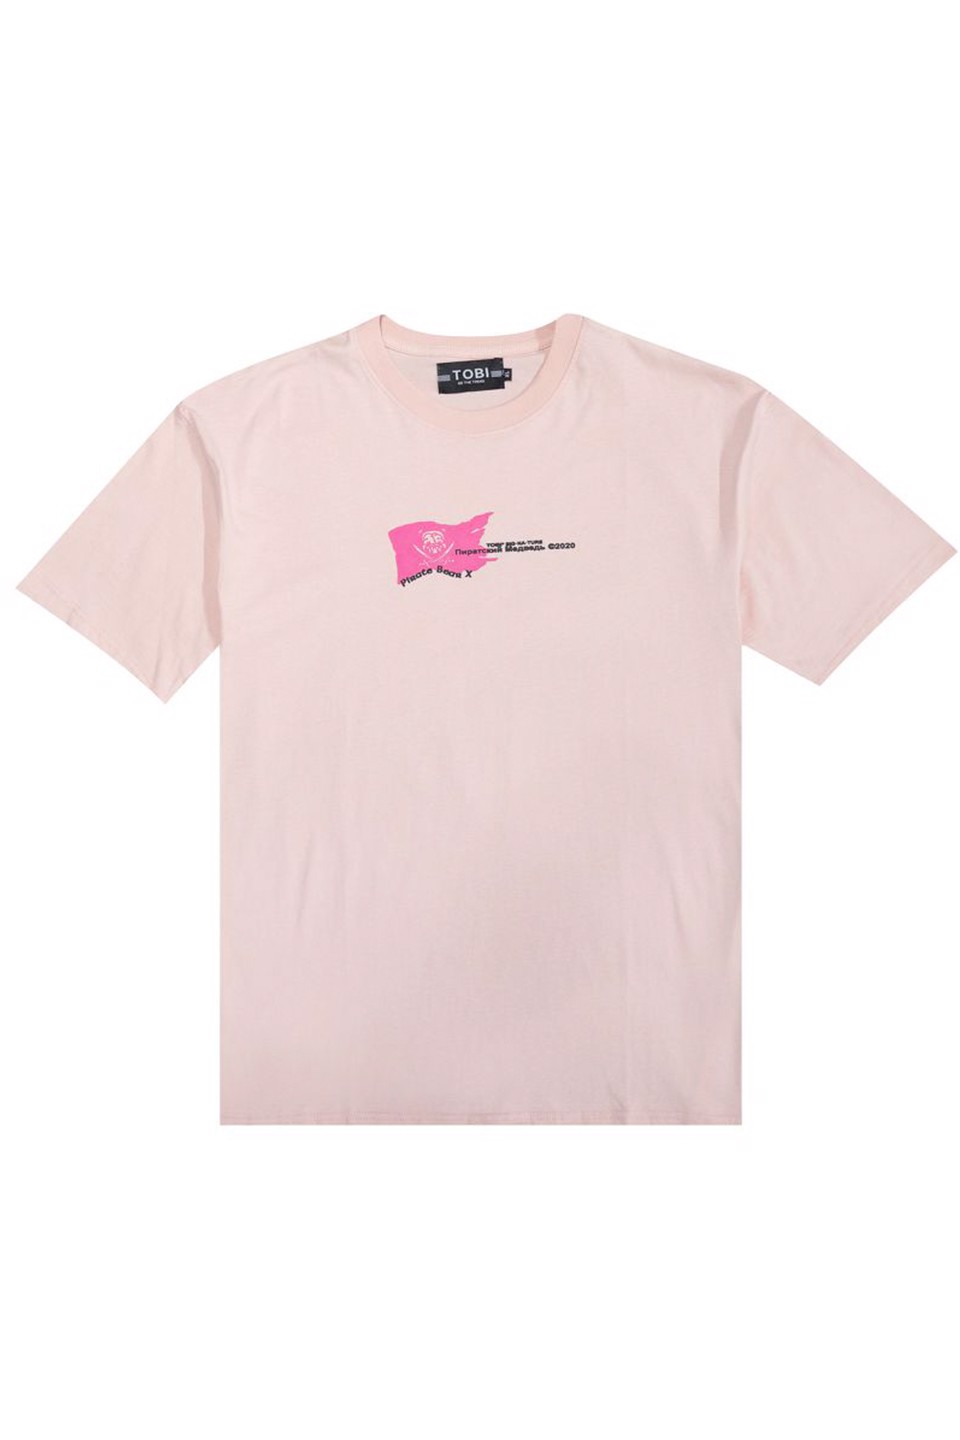 Pirate Tee - Pink